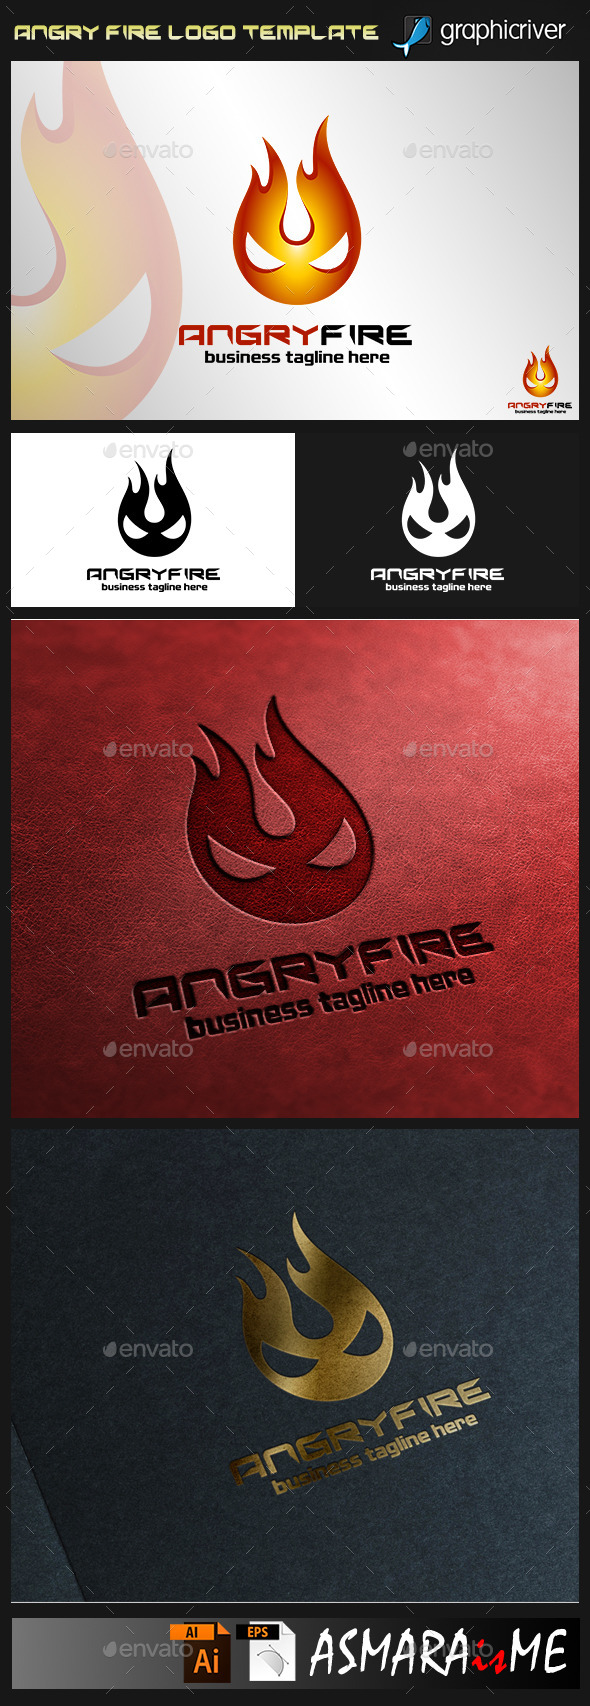 Angry Fire Logo